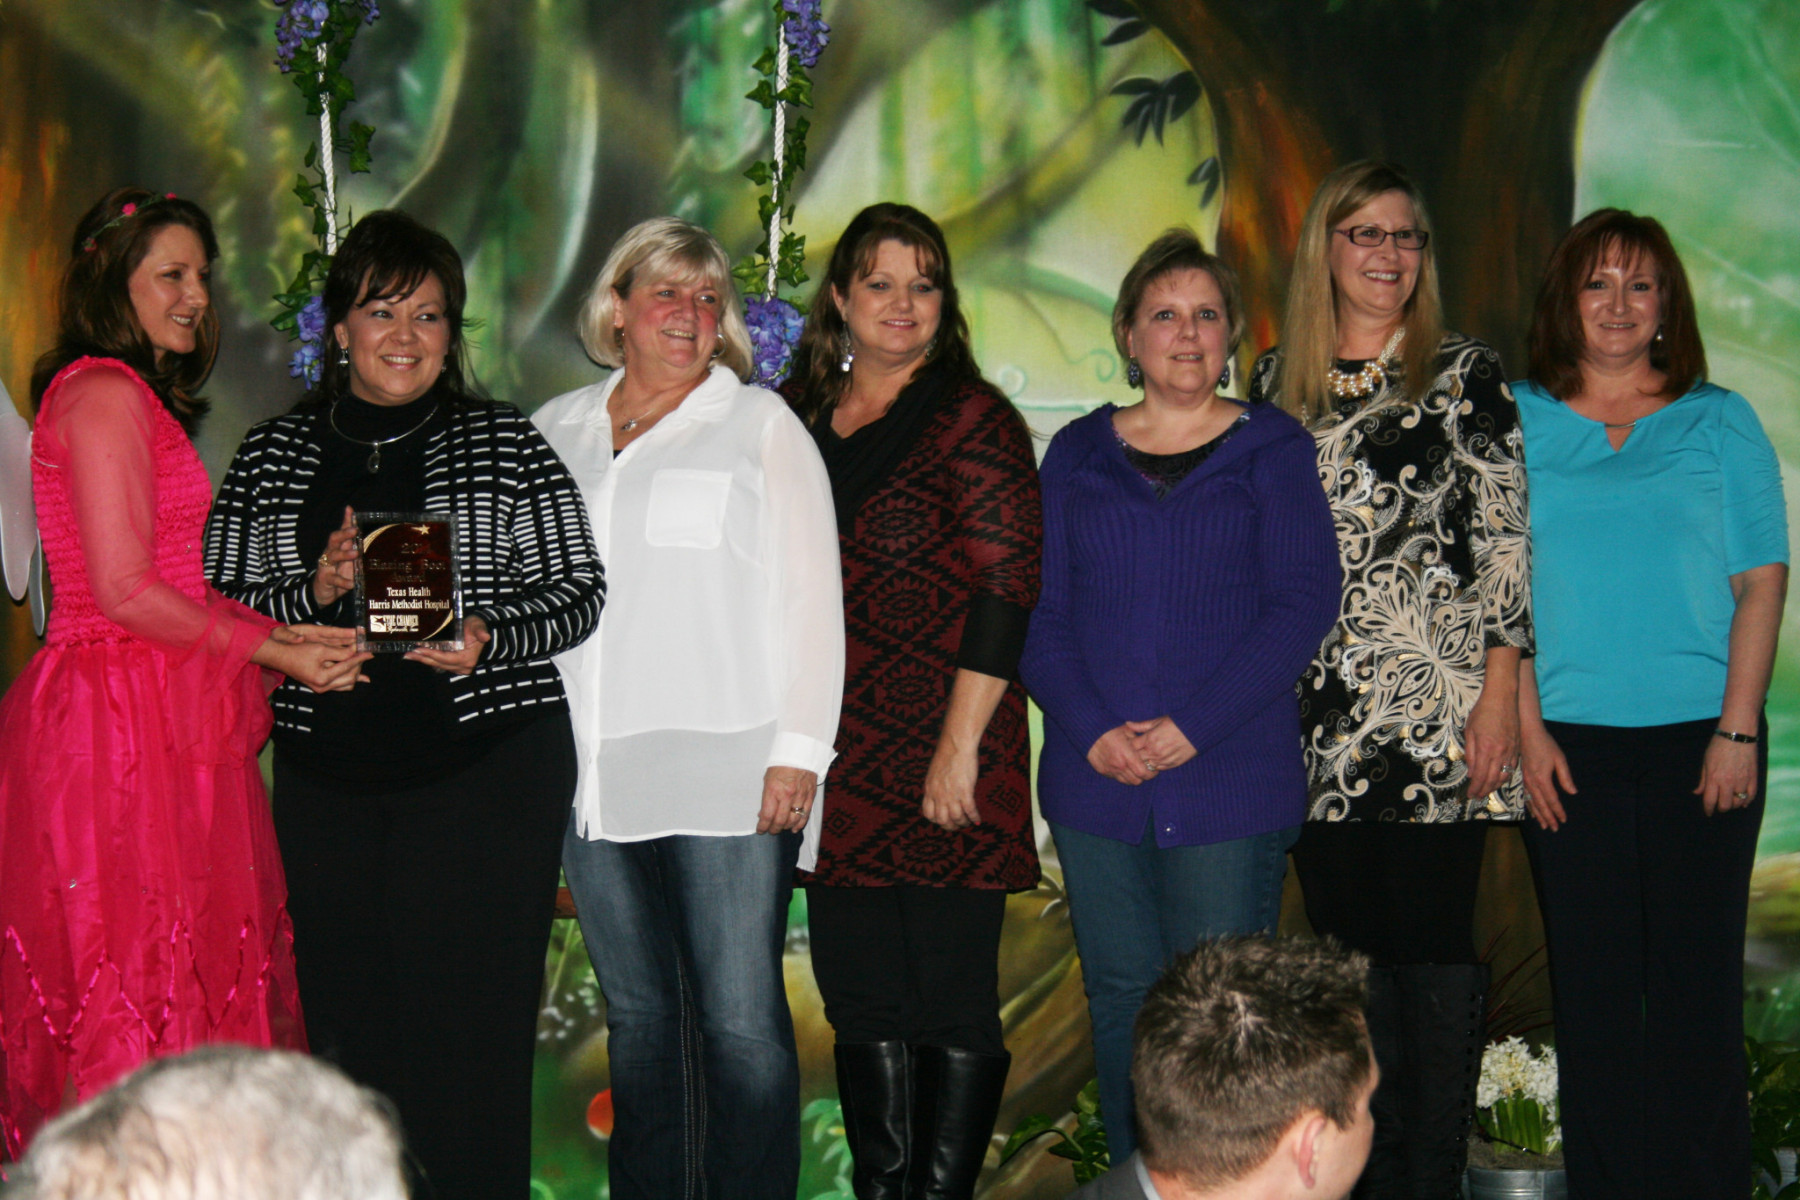 Blazing Boot Award winner - Texas Health Harris Methodist Hospital